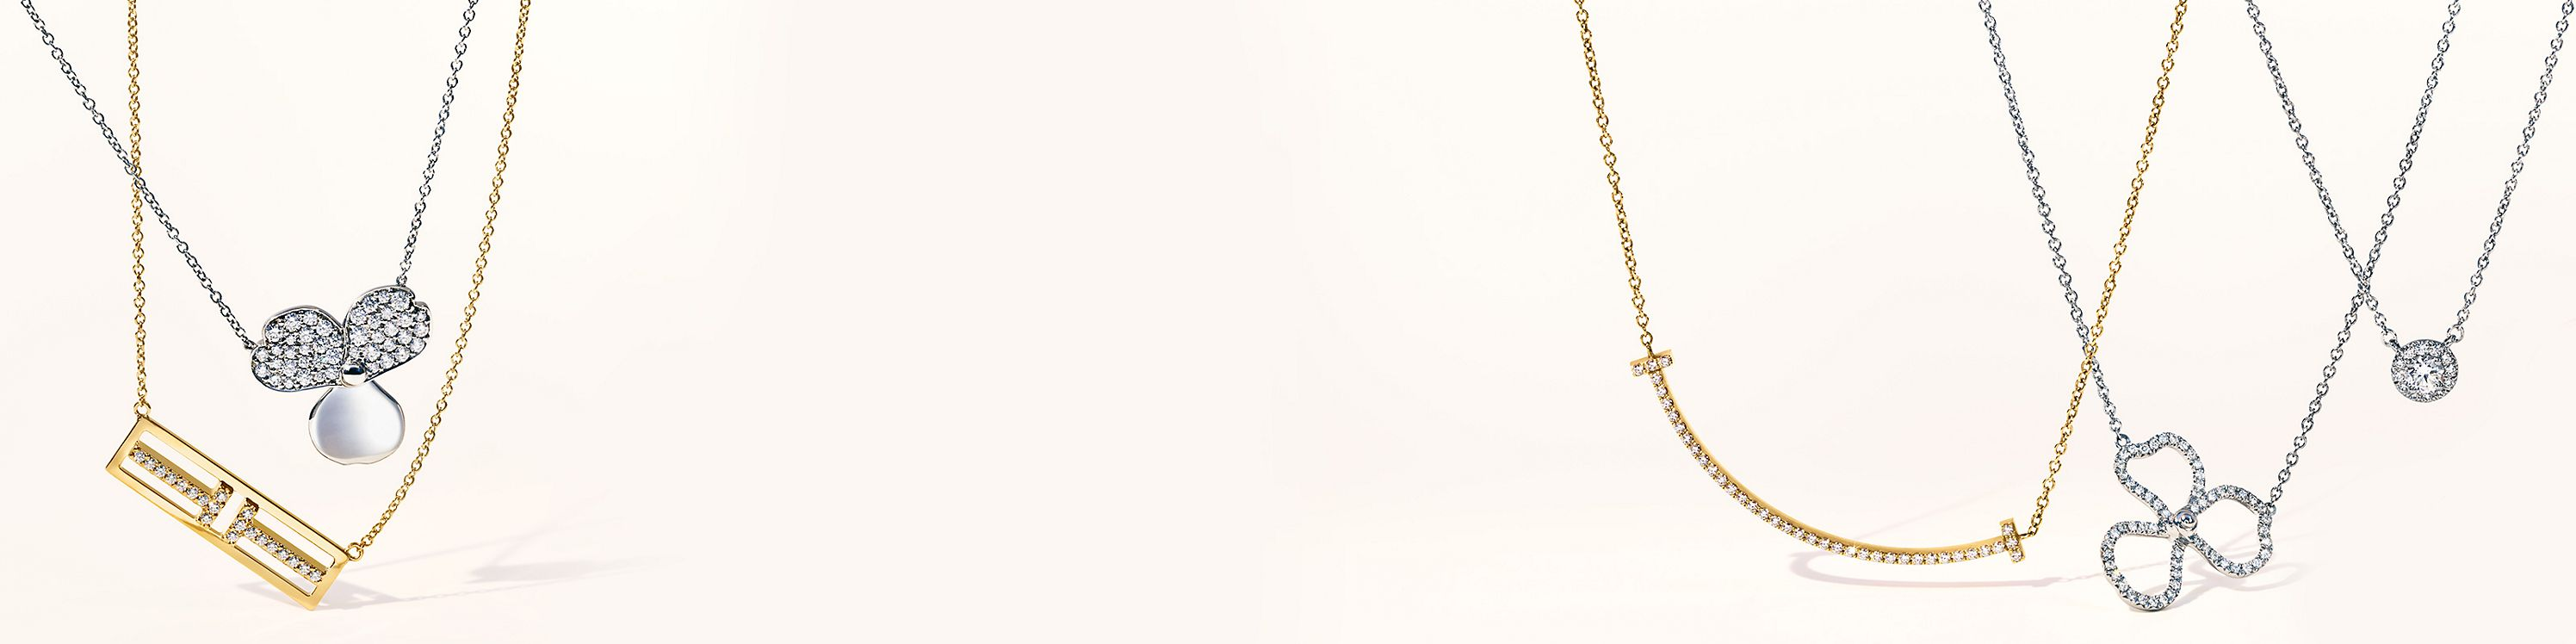 3a6e0b01b0d7b Necklaces & Pendants | Tiffany & Co.